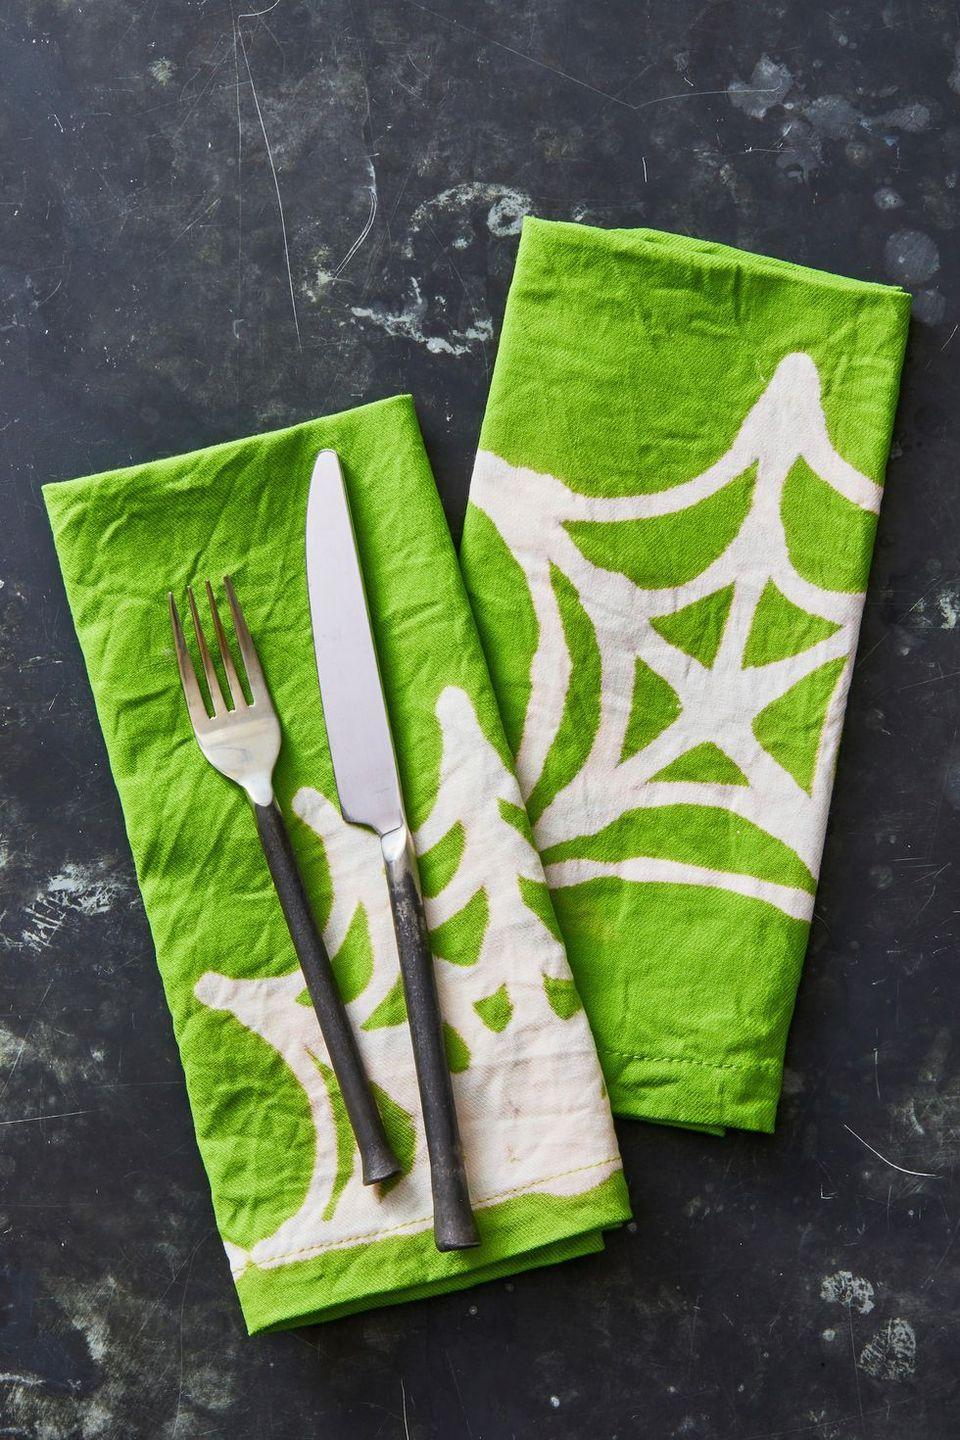 """<p>Wow your dinner guests with these hand-drawn napkins. Use a bleach pen to draw a spiderweb design on the front of cloth napkins. Let them sit for at least two hours and watch as the design turns completely white. Just rinse and dry the napkins before sticking them on the table. </p><p><a class=""""link rapid-noclick-resp"""" href=""""https://www.amazon.com/Laodicea-Home-Napkins-Comfortable-Reusable/dp/B07Z9GRR5N/?tag=syn-yahoo-20&ascsubtag=%5Bartid%7C10055.g.421%5Bsrc%7Cyahoo-us"""" rel=""""nofollow noopener"""" target=""""_blank"""" data-ylk=""""slk:SHOP CLOTH NAPKINS"""">SHOP CLOTH NAPKINS</a></p>"""